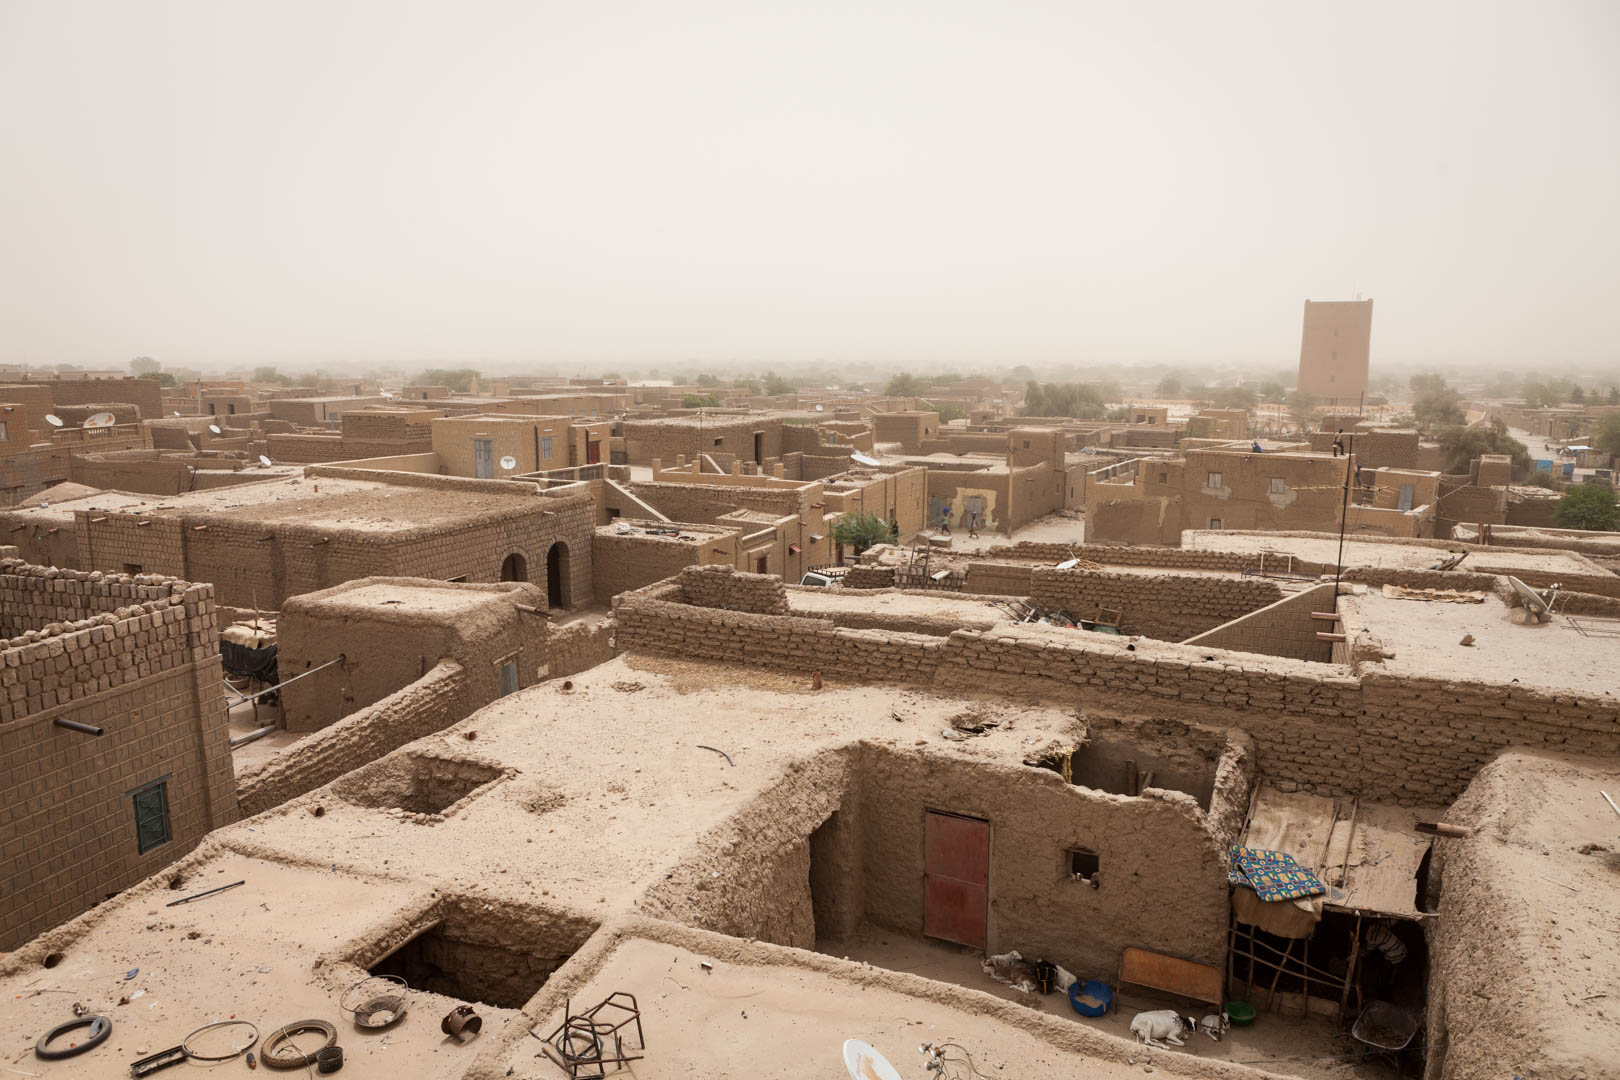 A general view over Timbuktu. Timbuktu has not only been deprived of its economical values when it lost its status as important trading city. Now with the manuscripts in Bamako, it also lost its cultural identity.